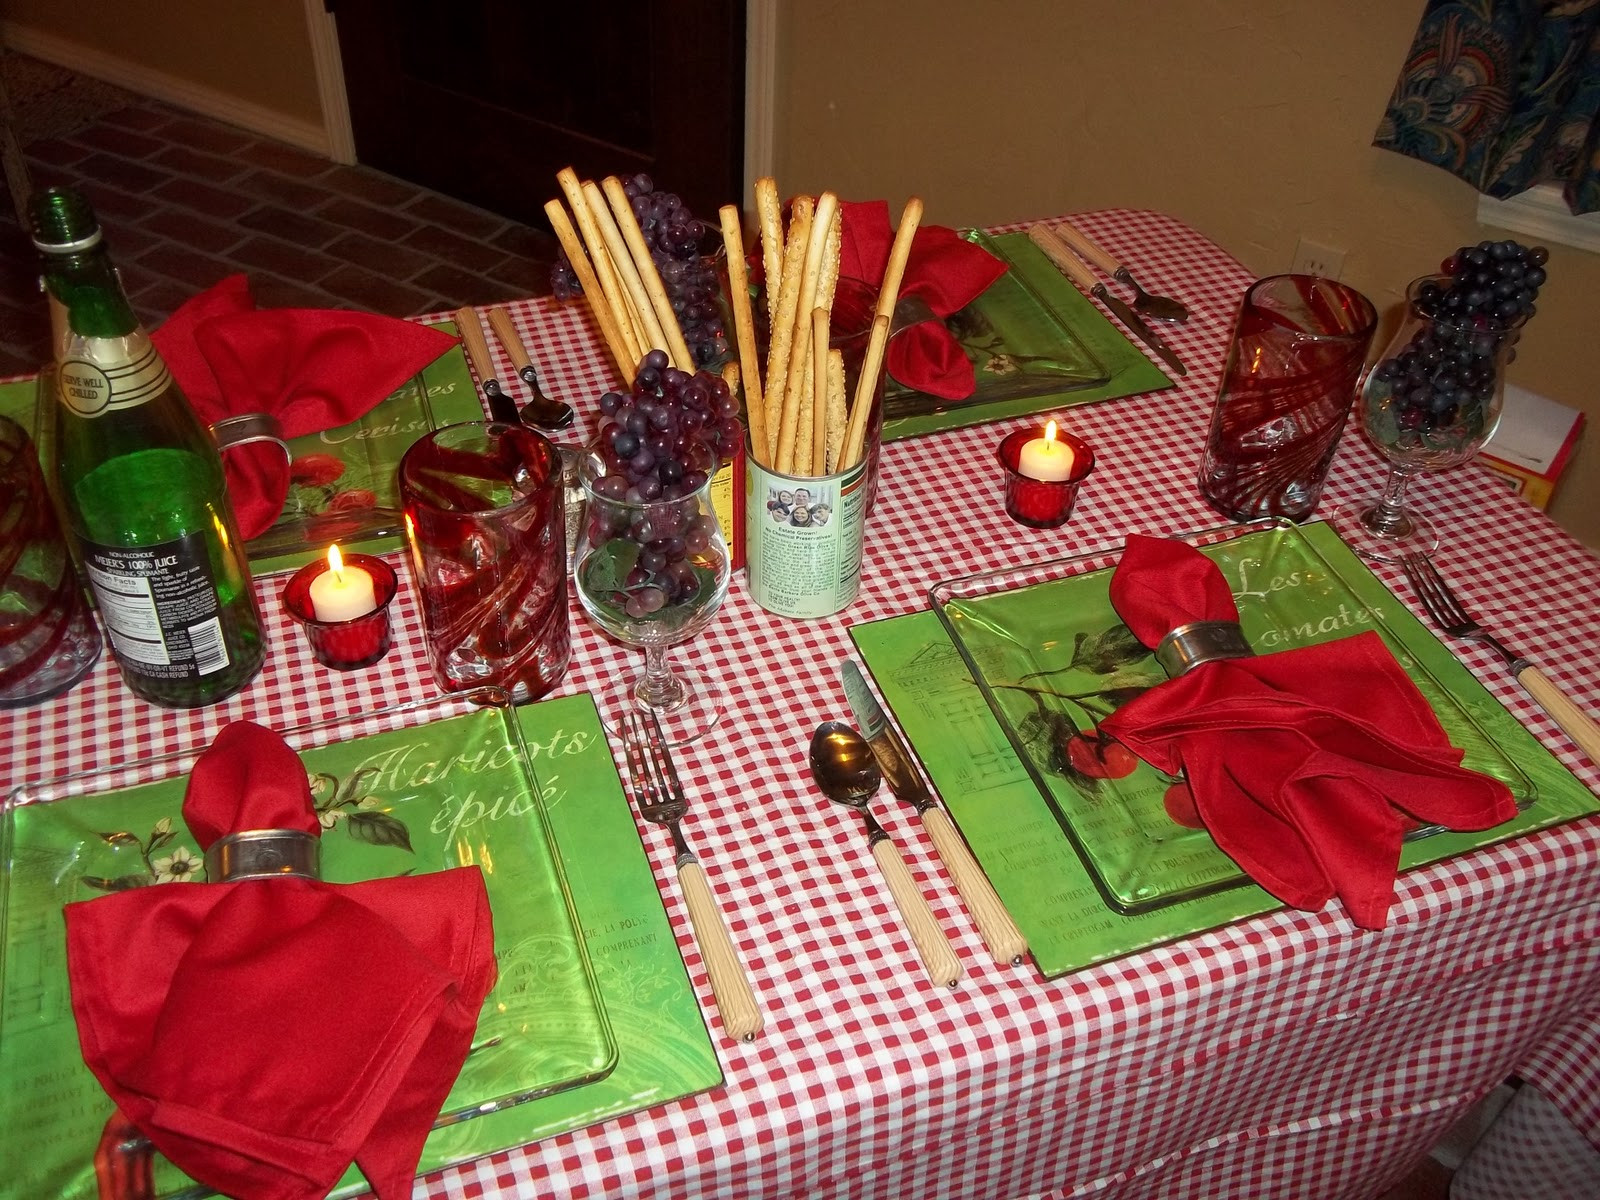 Best ideas about Mom's Birthday Ideas . Save or Pin The Posh Pixie Italian Table Setting Italian Dinner Now.